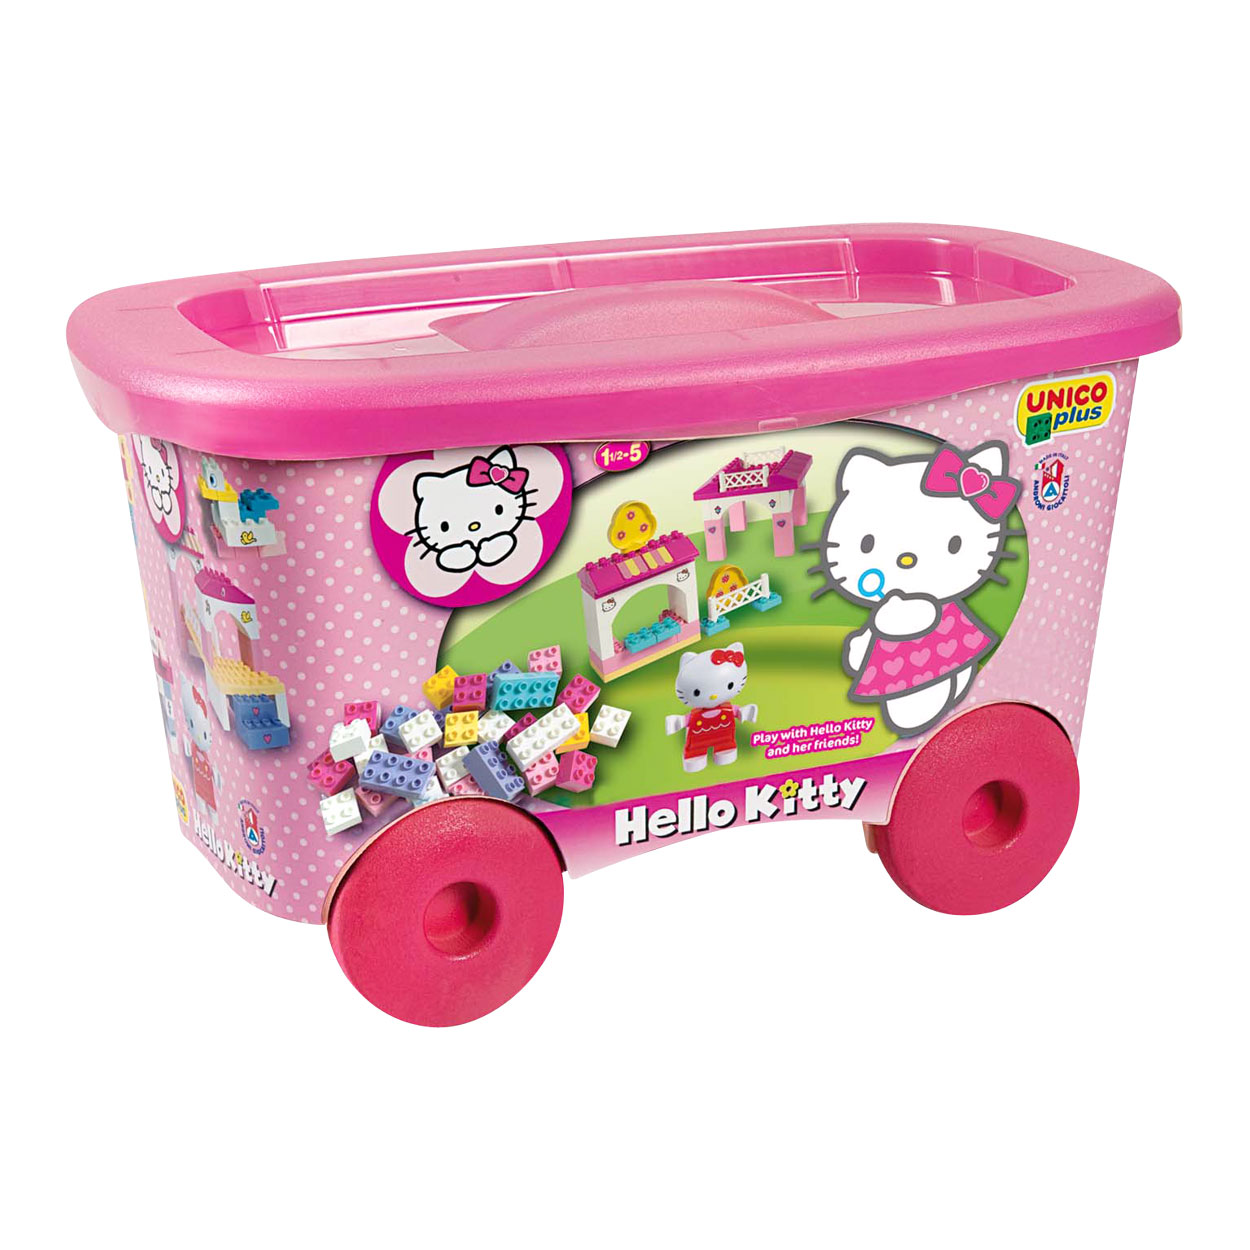 Hello Kitty Unico Box